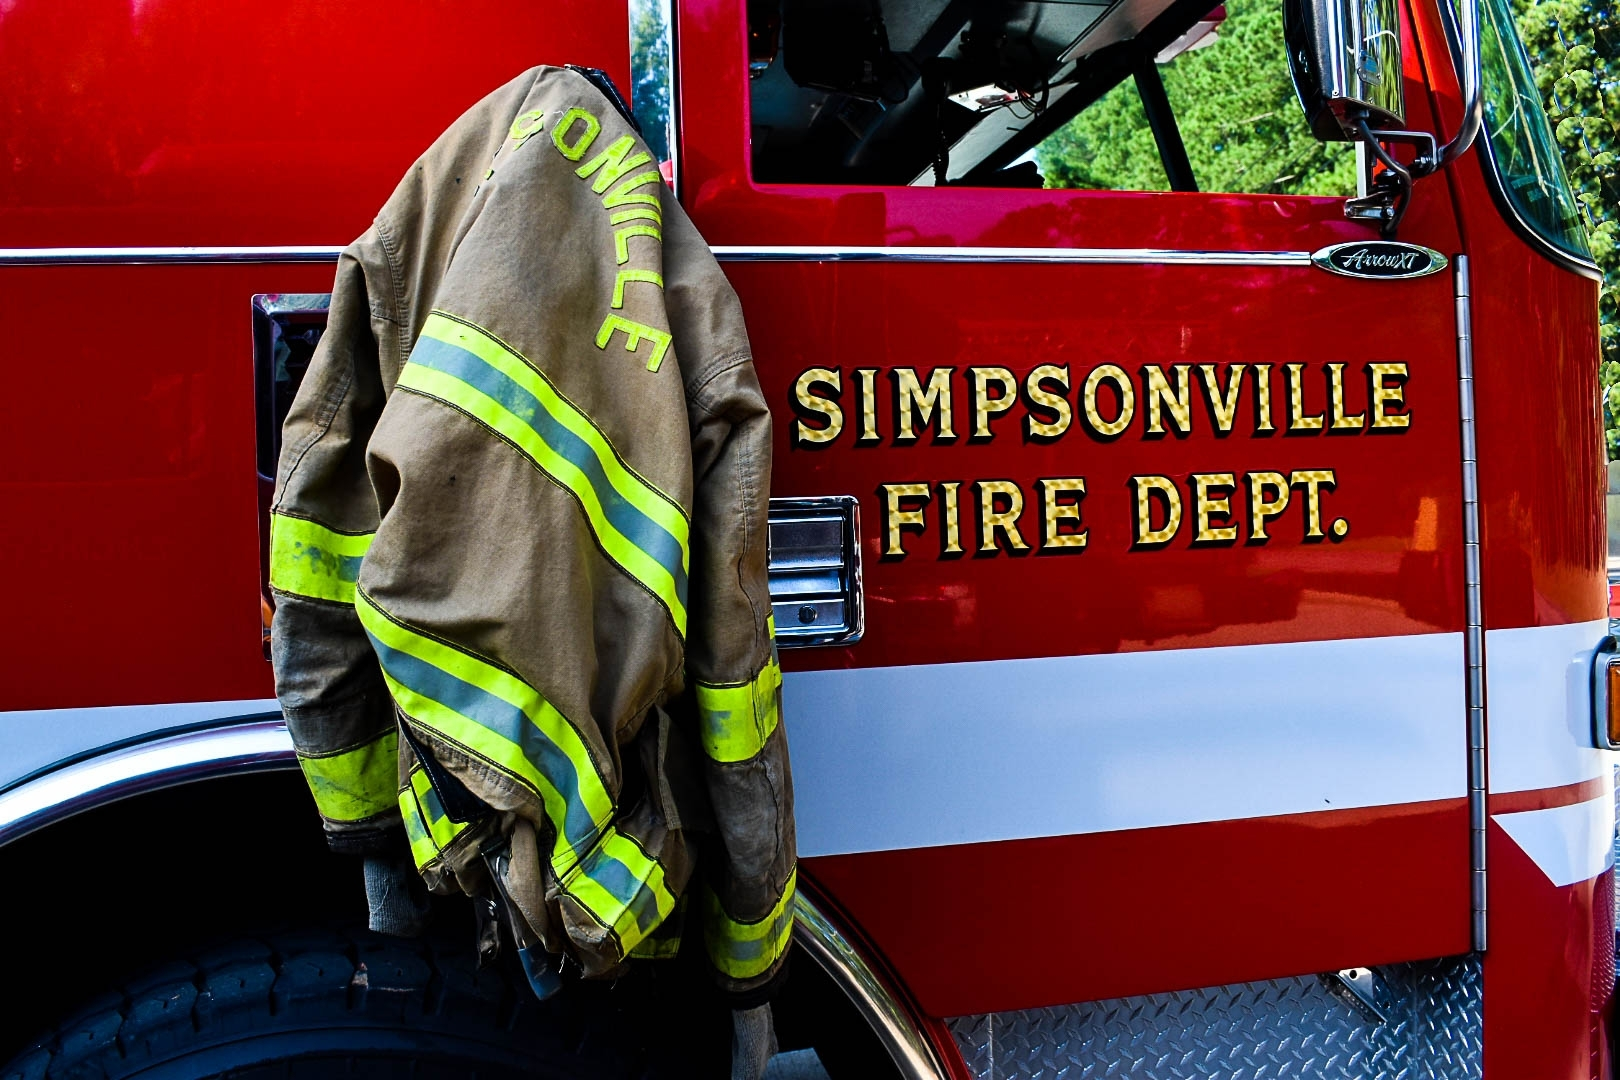 Fire Department | Simpsonville South Carolina pertaining to 48 Hours Fire Shift Schedule